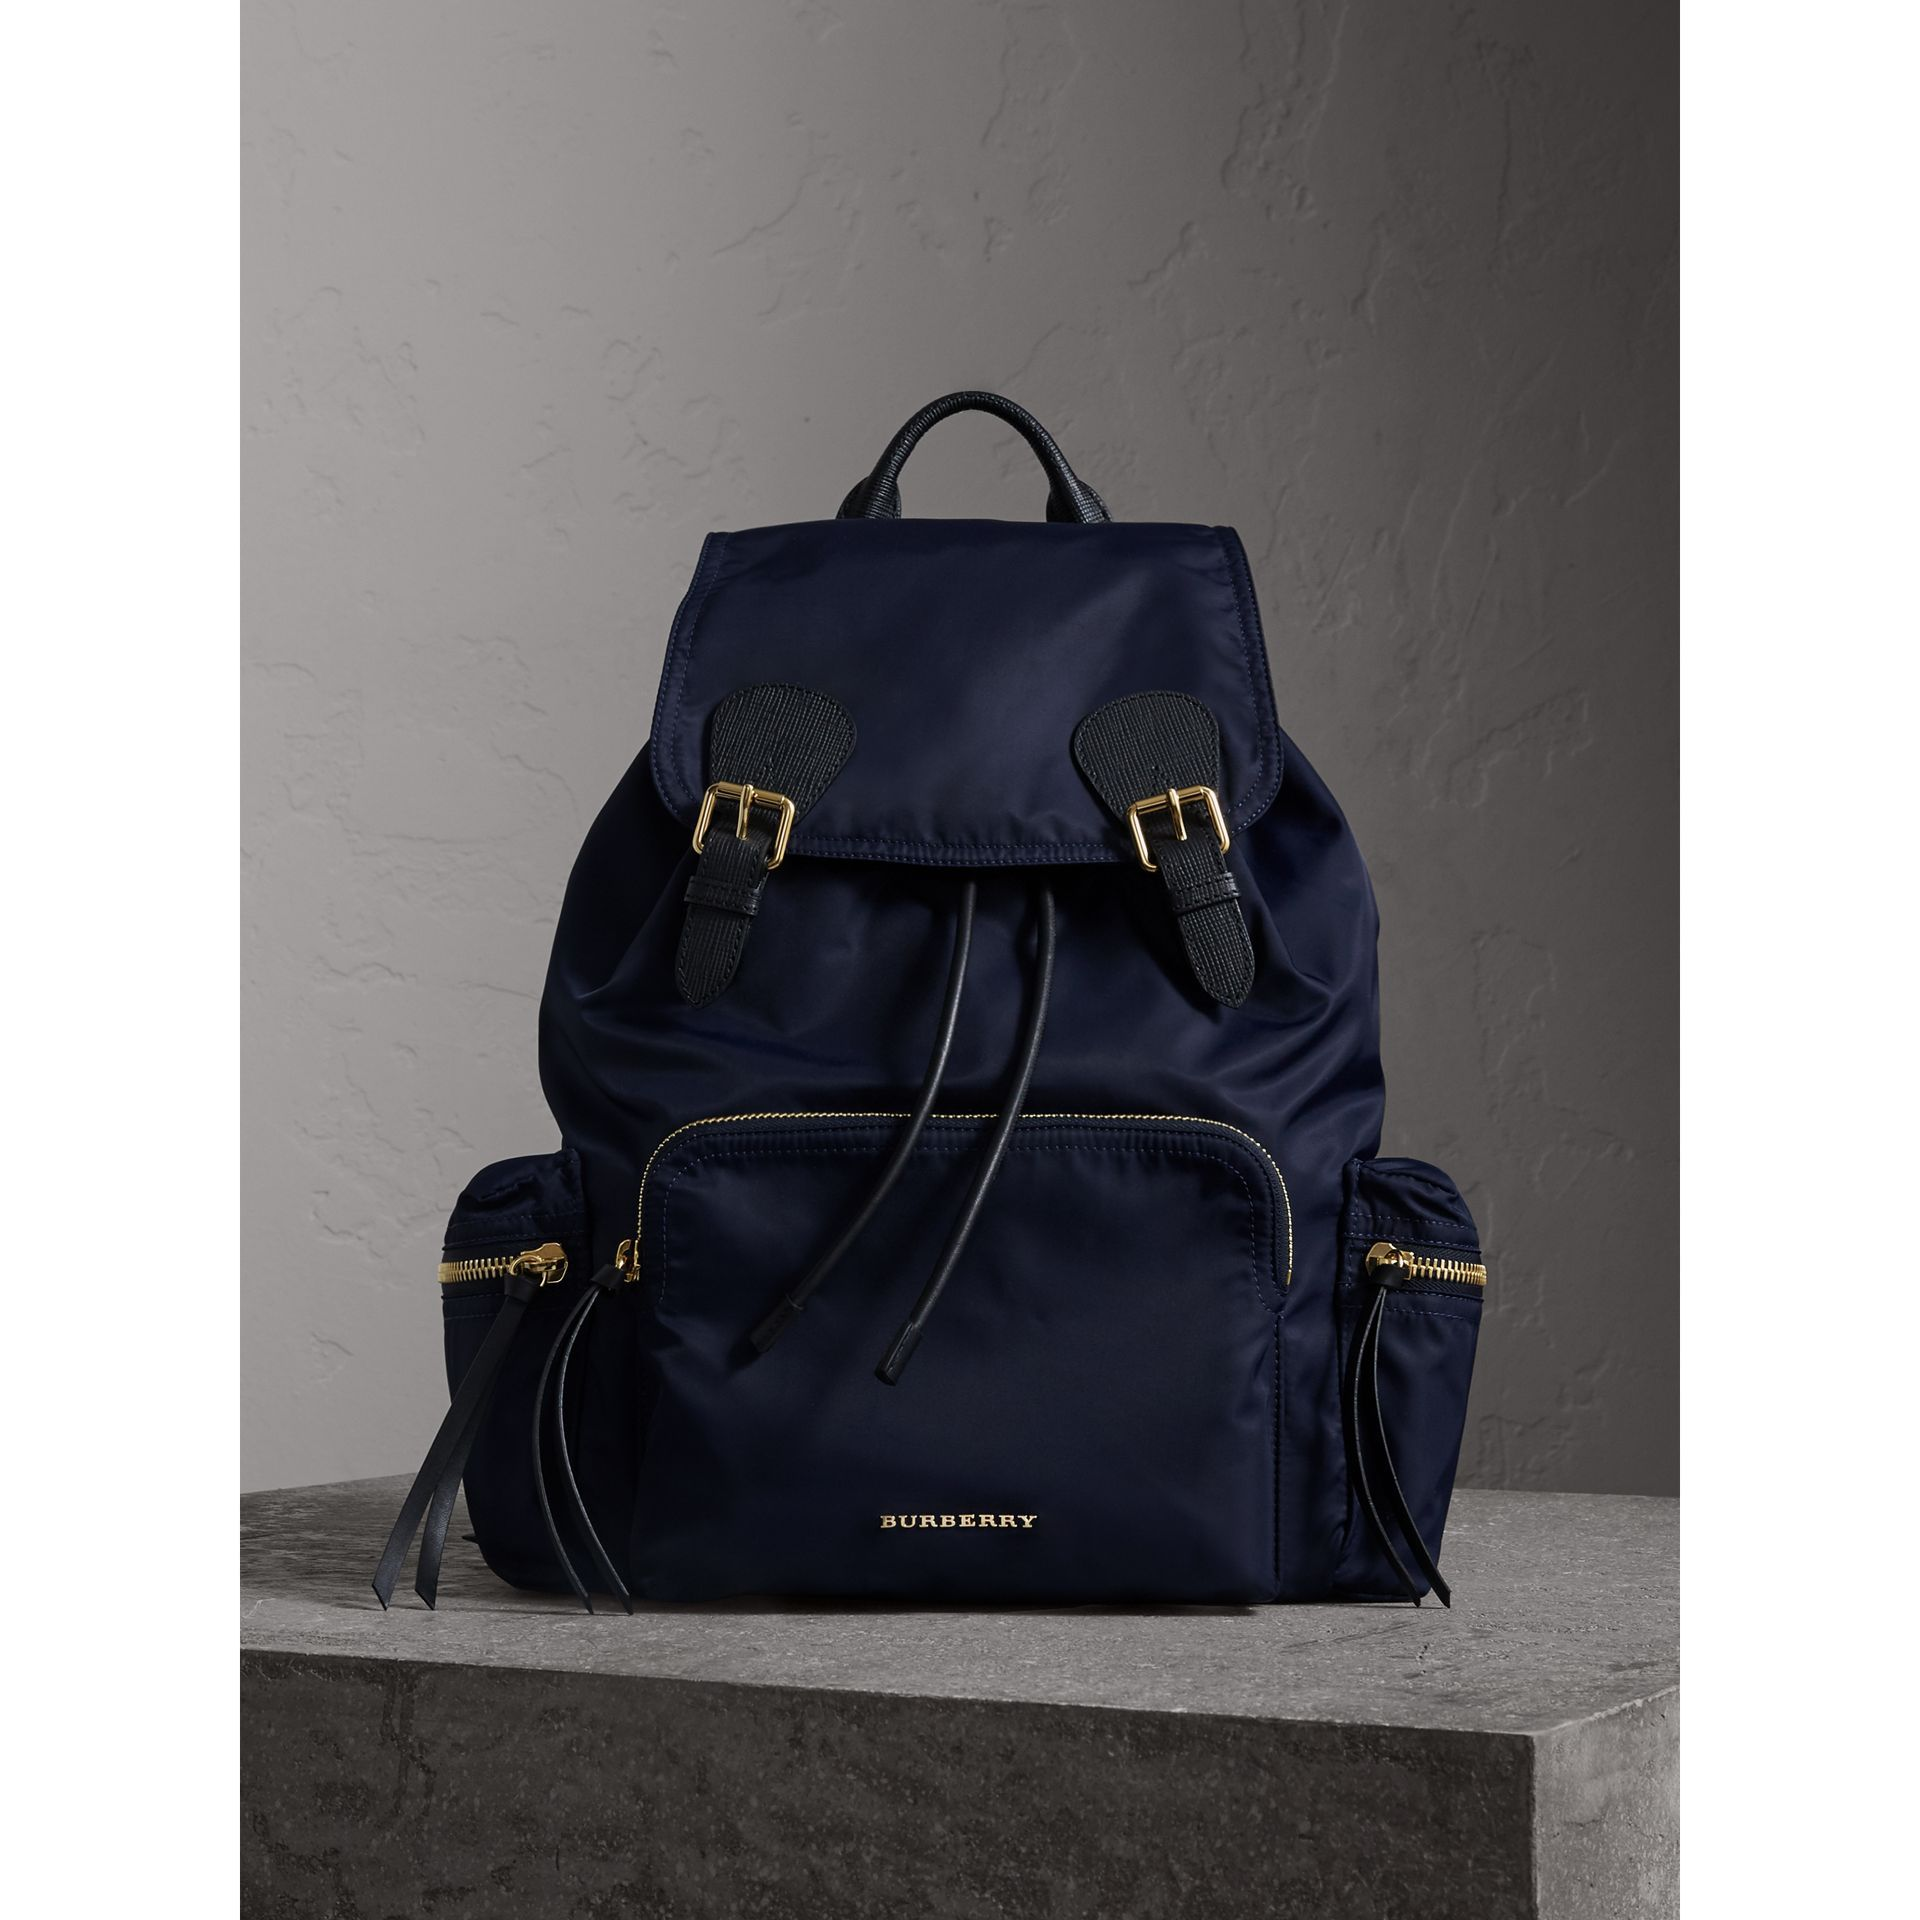 burberry the large rucksack in technical nylon and leather